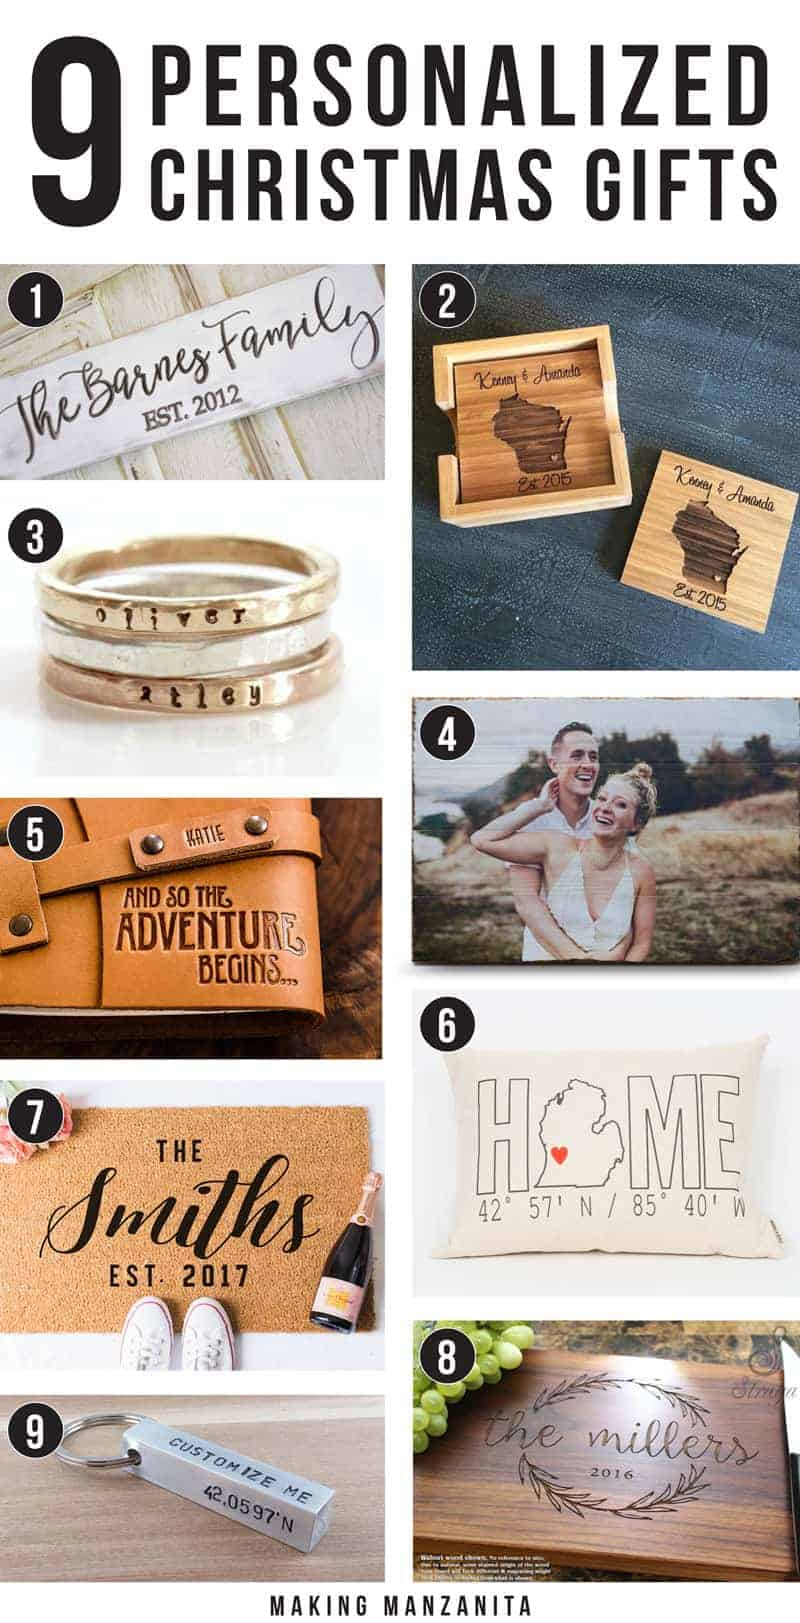 9 Awesome Personalized Christmas Gifts Custom Gift Ideas From Etsy For Friends